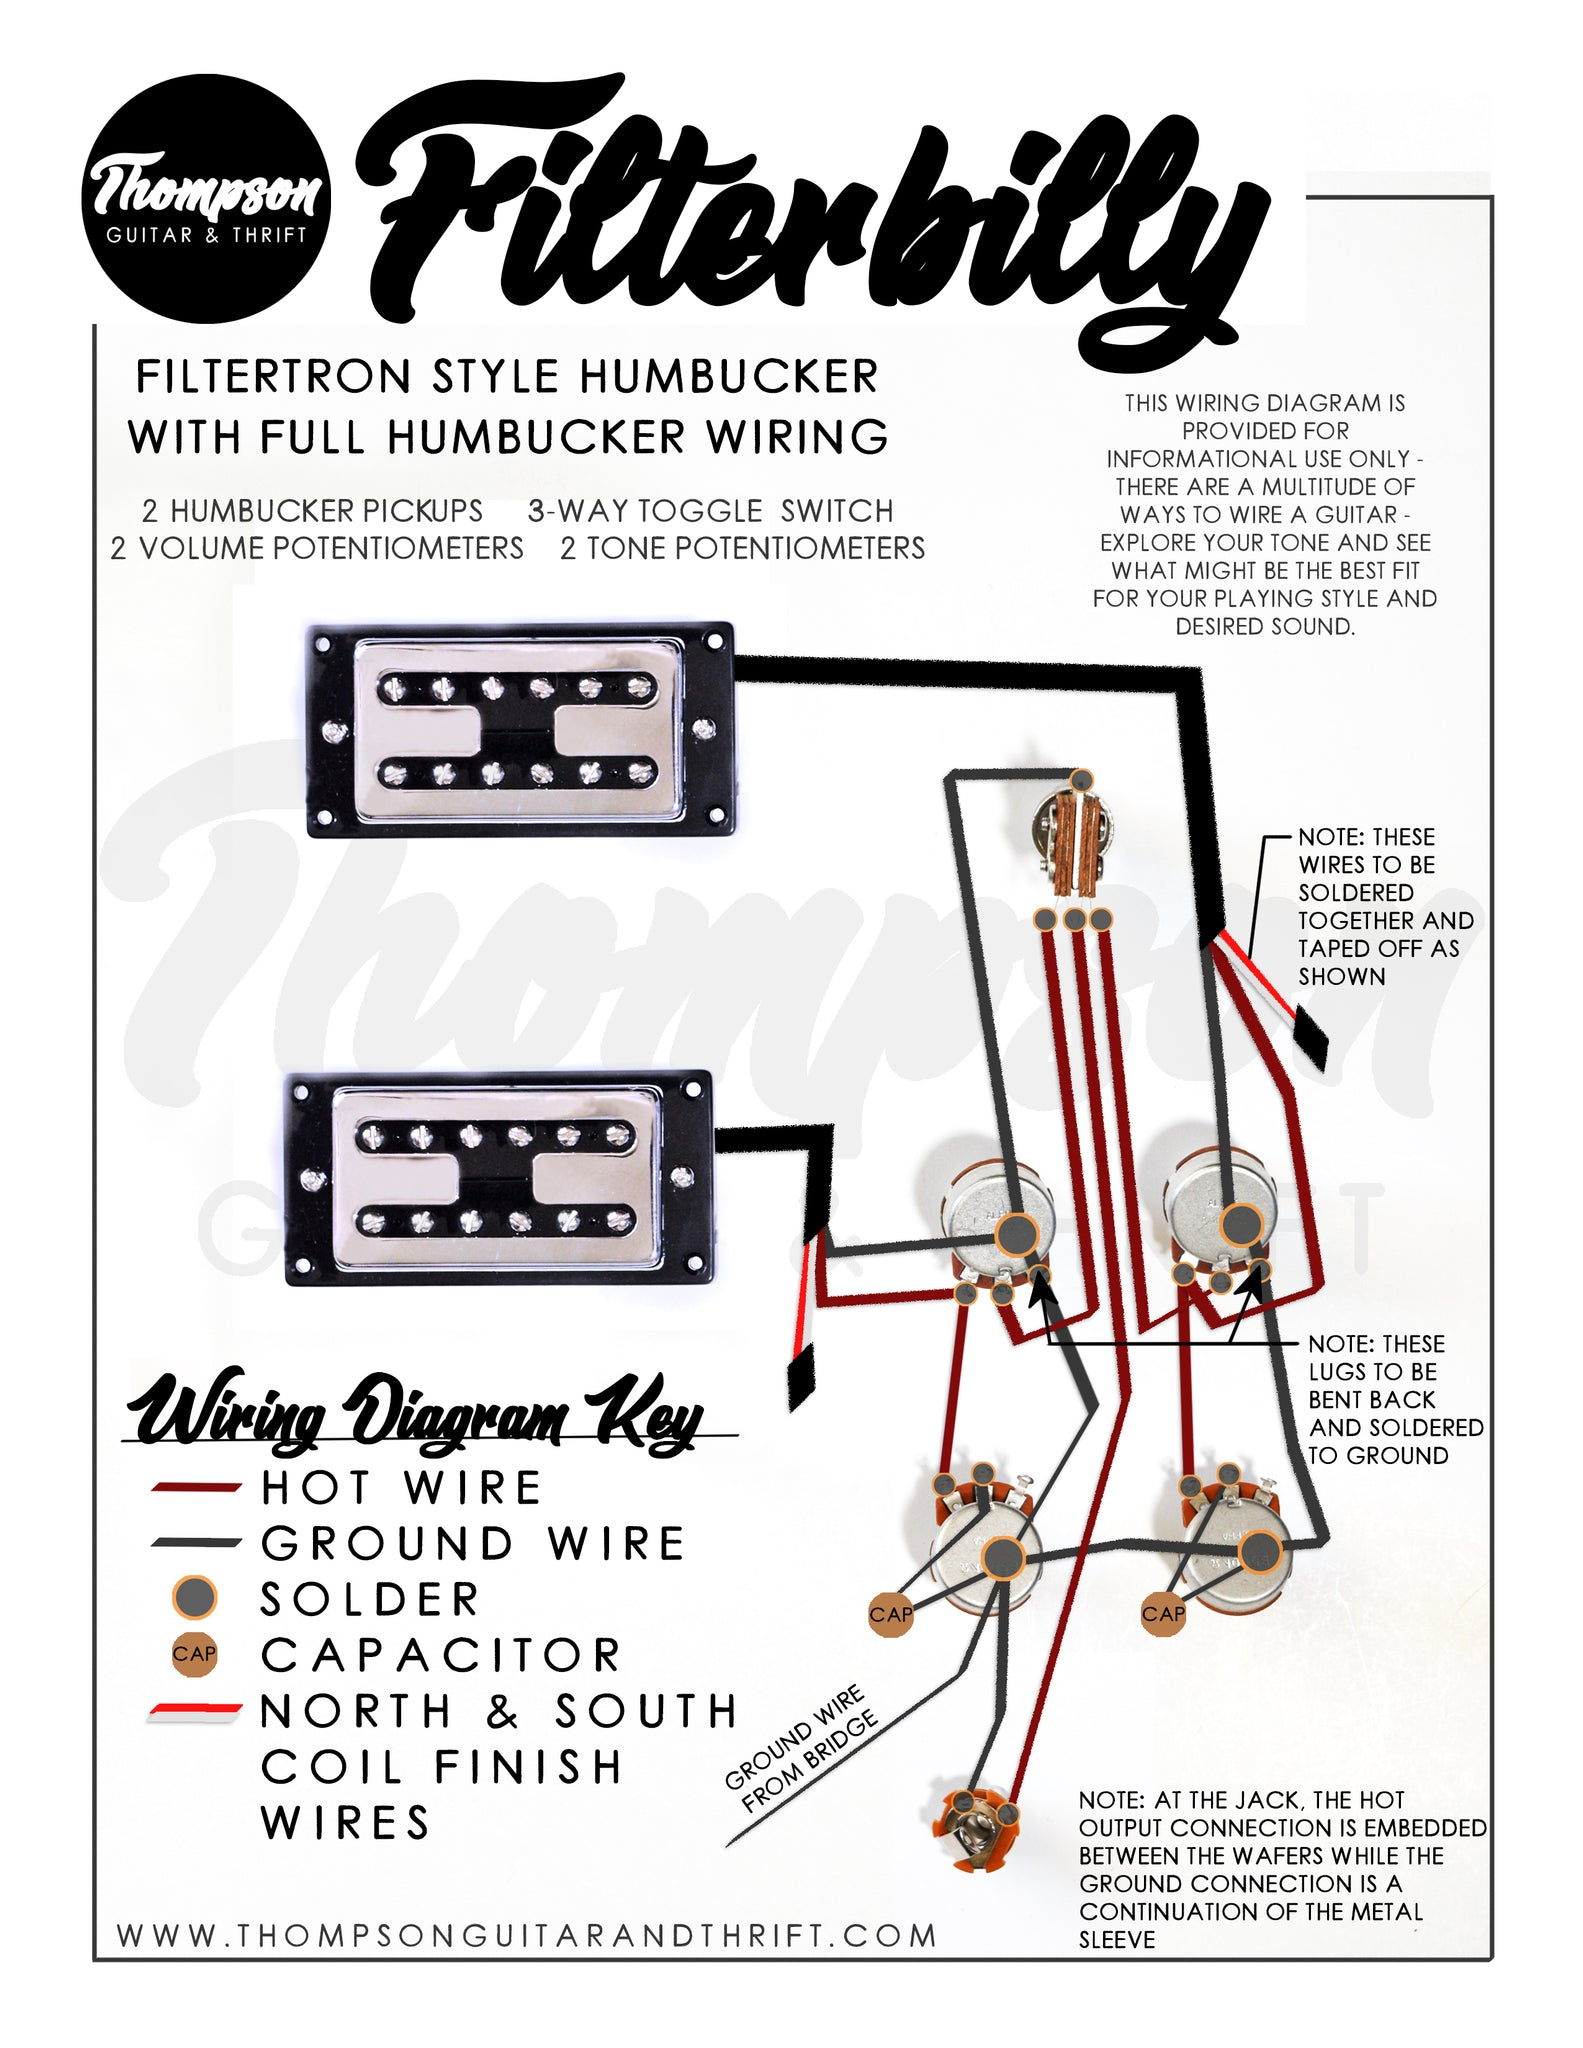 Filterbilly Humbucker Pickup Wiring Diagram